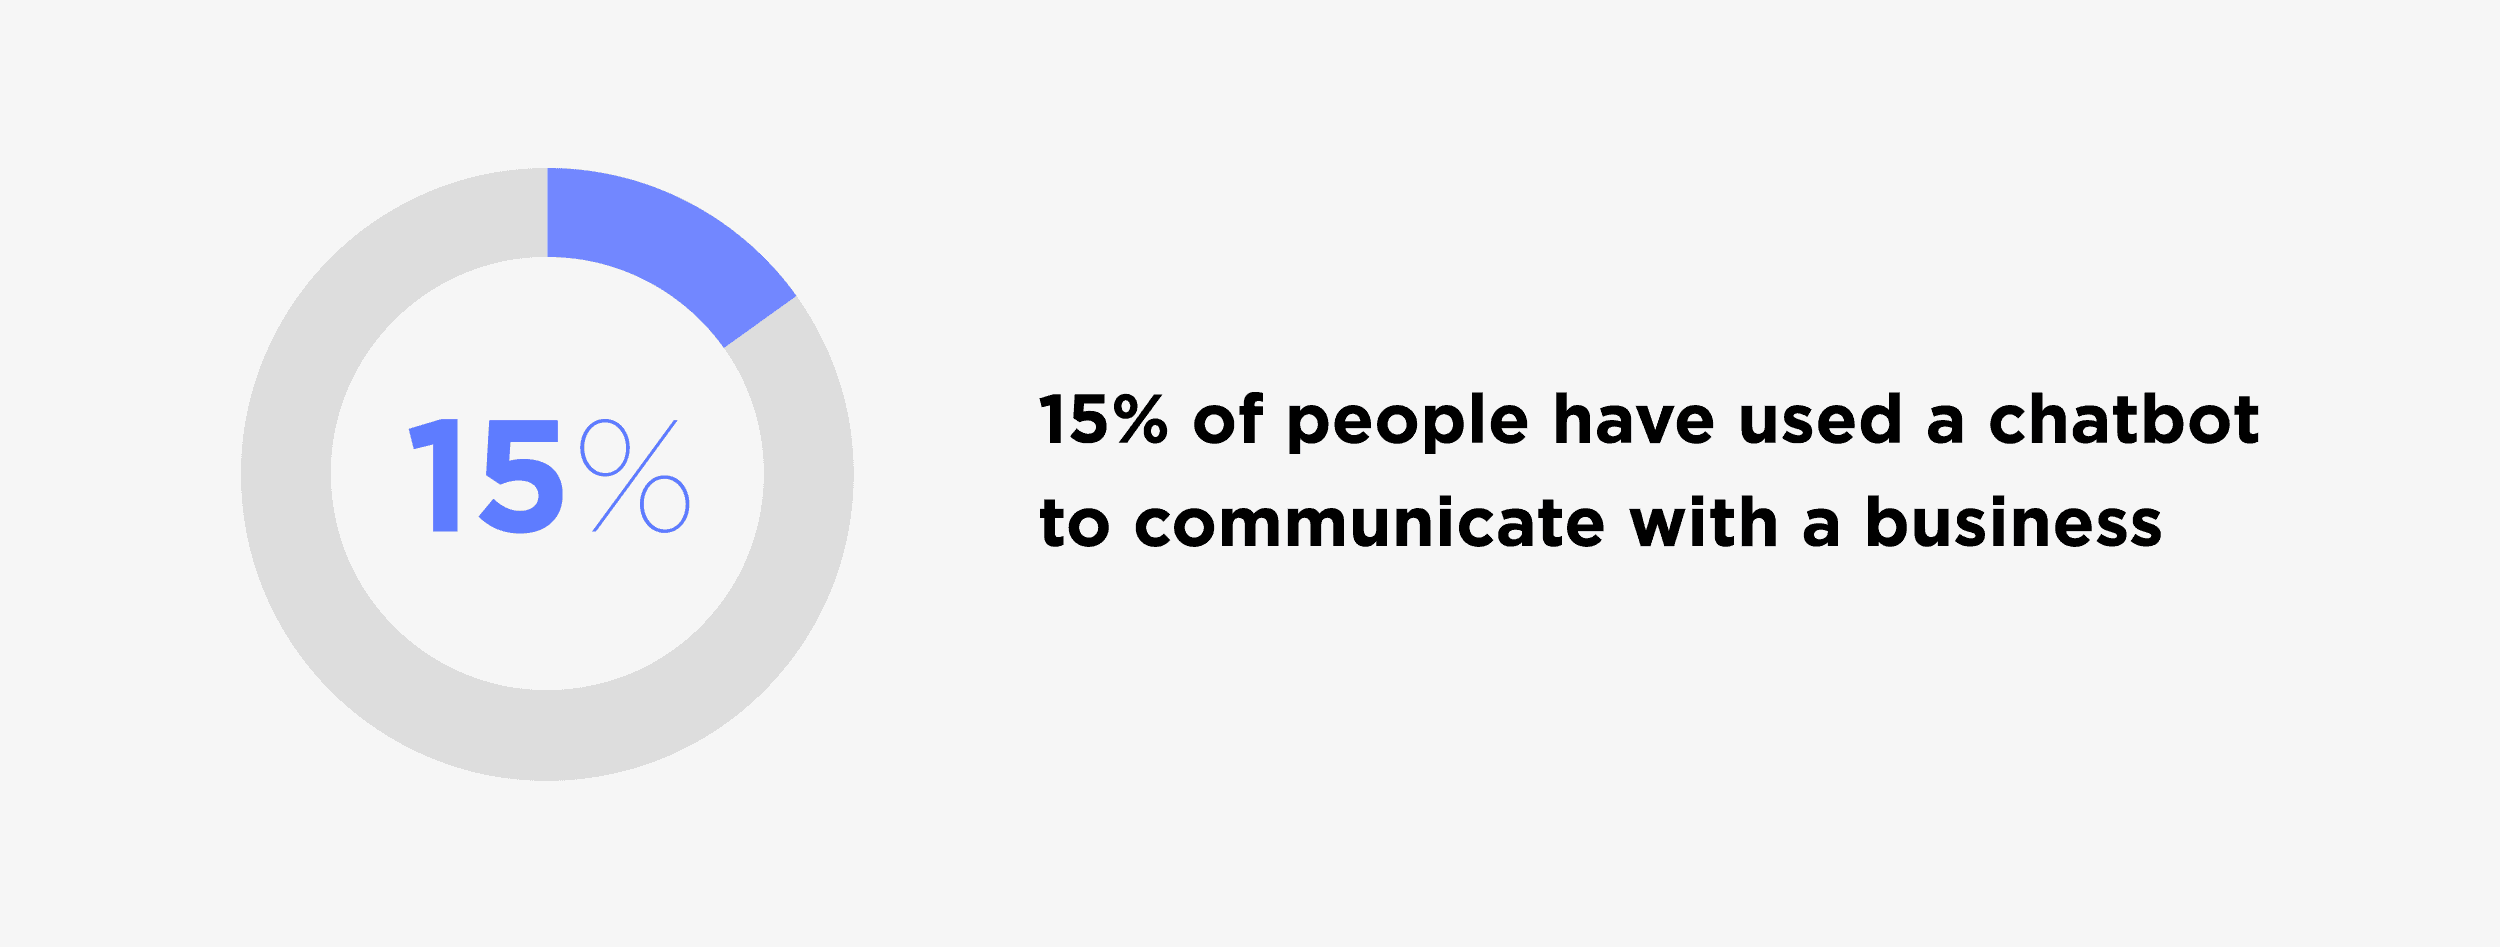 People used chatbot to communicate